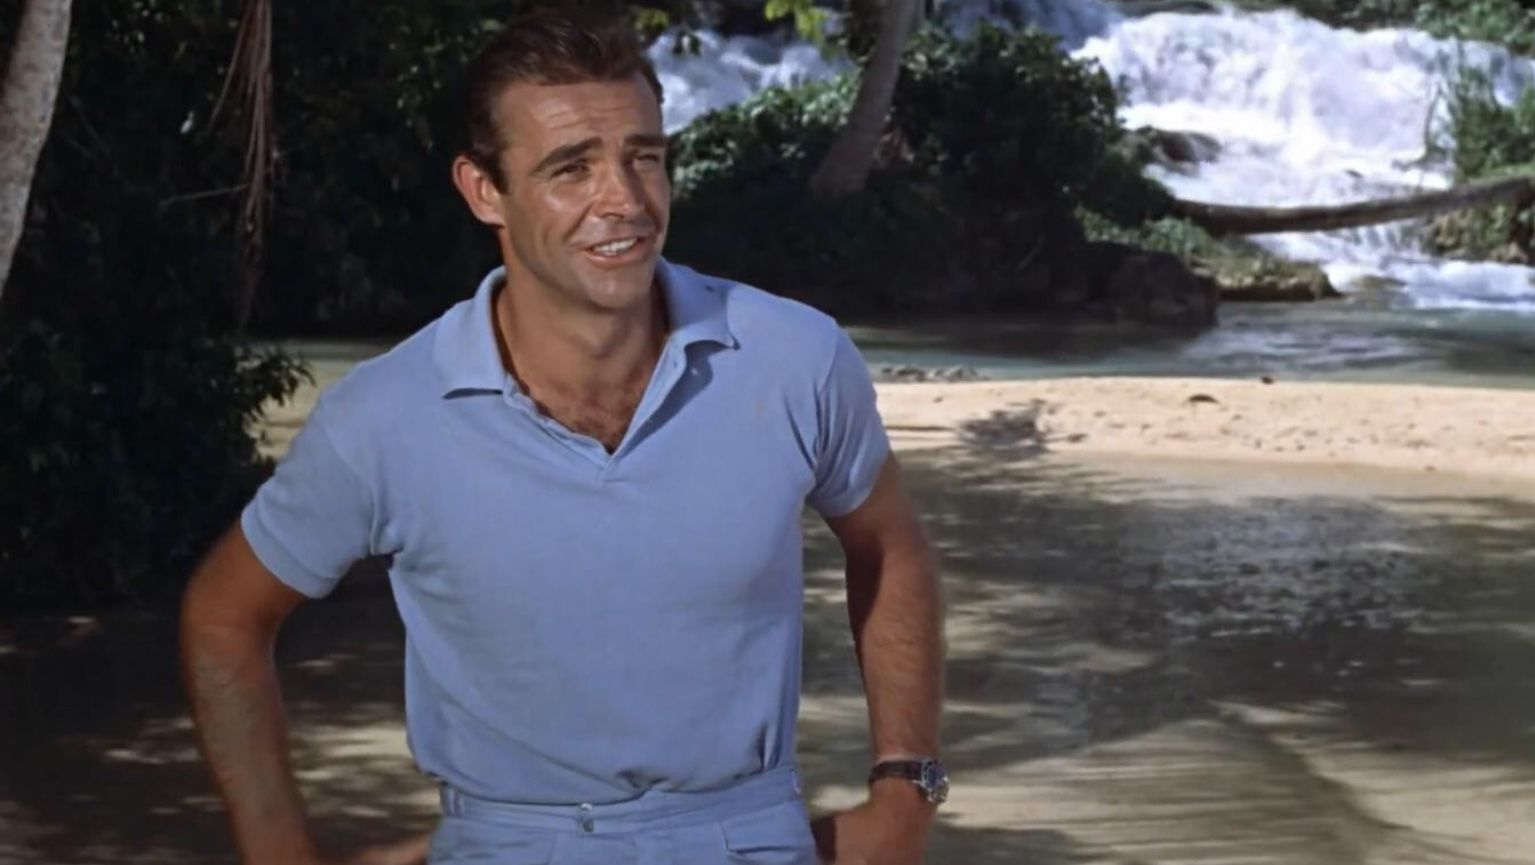 Sean Connery wearing the Submariner Rolex